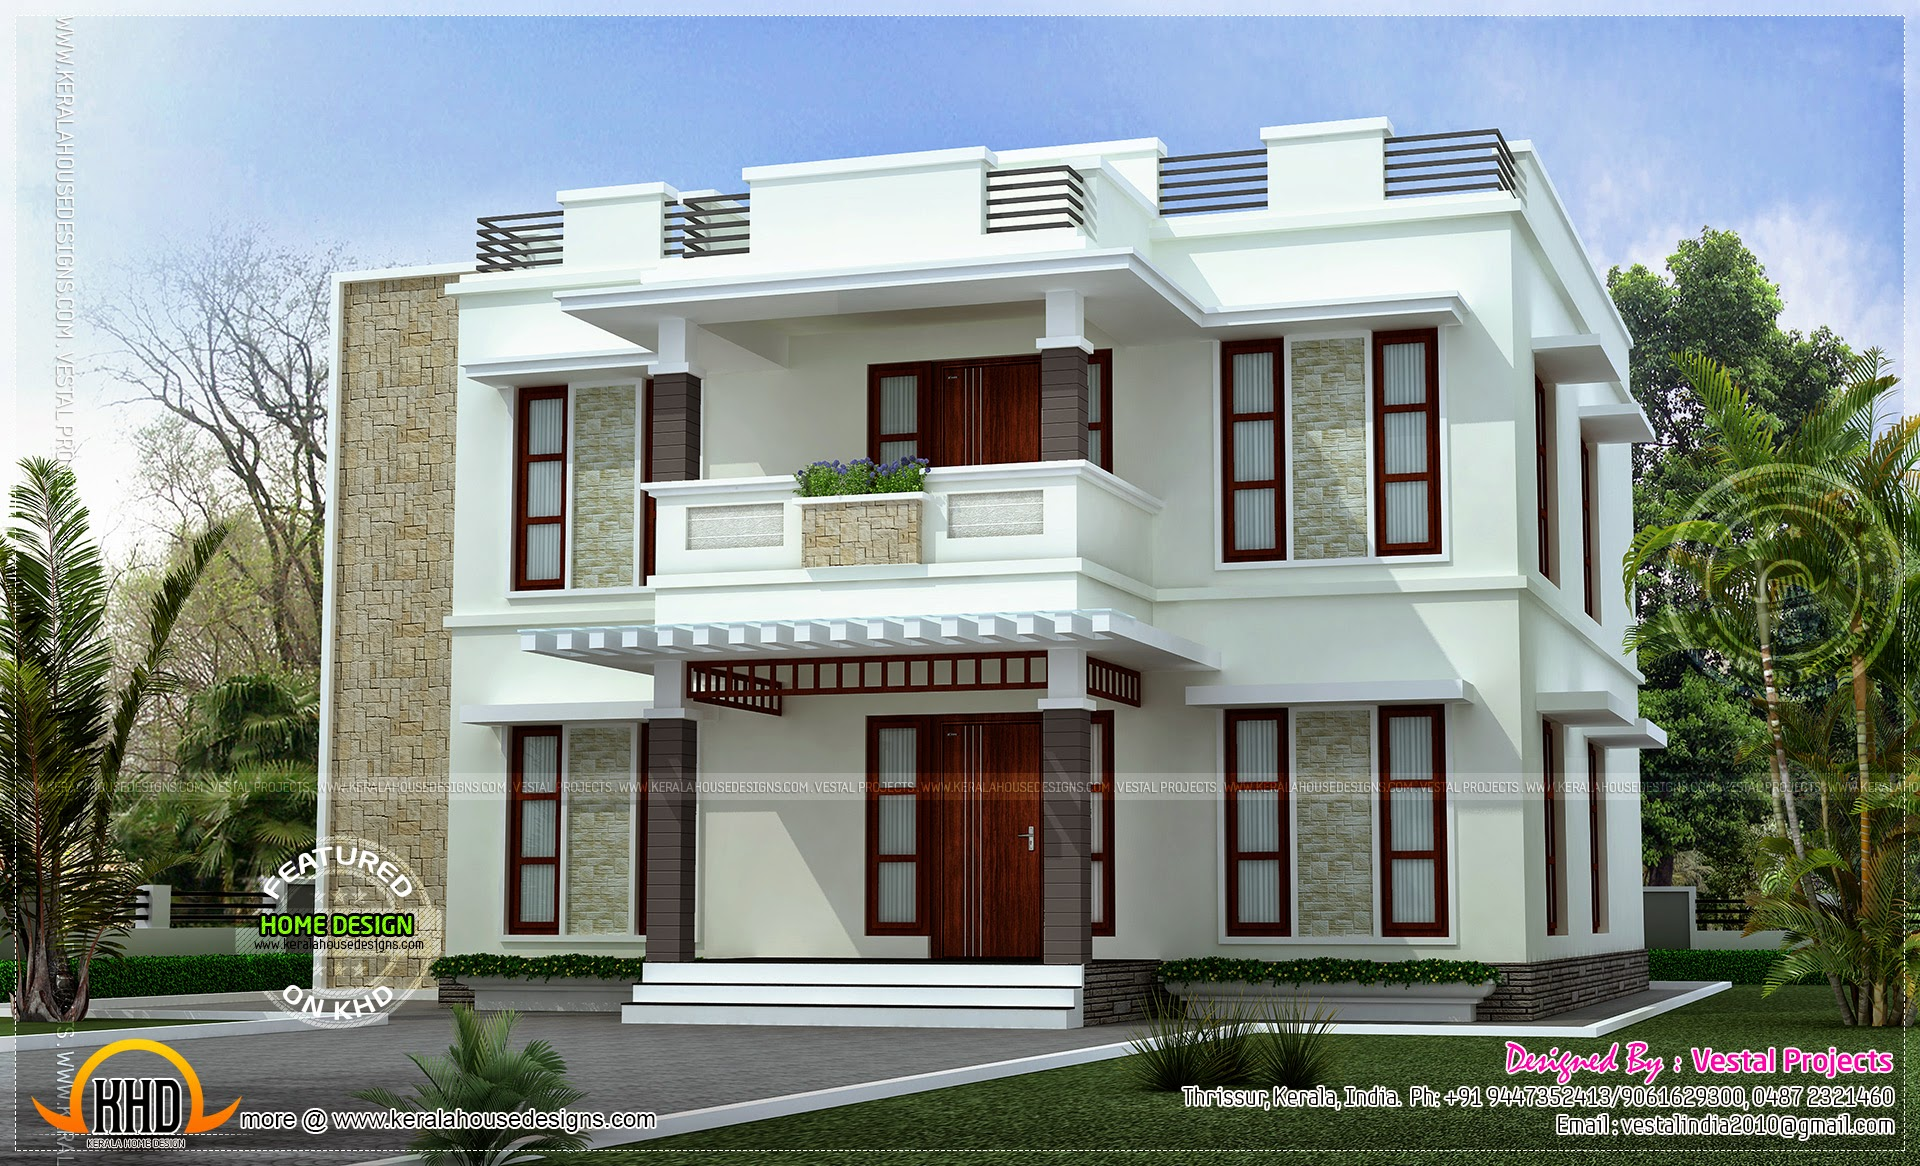 Beautiful home design flat roof style Kerala home design